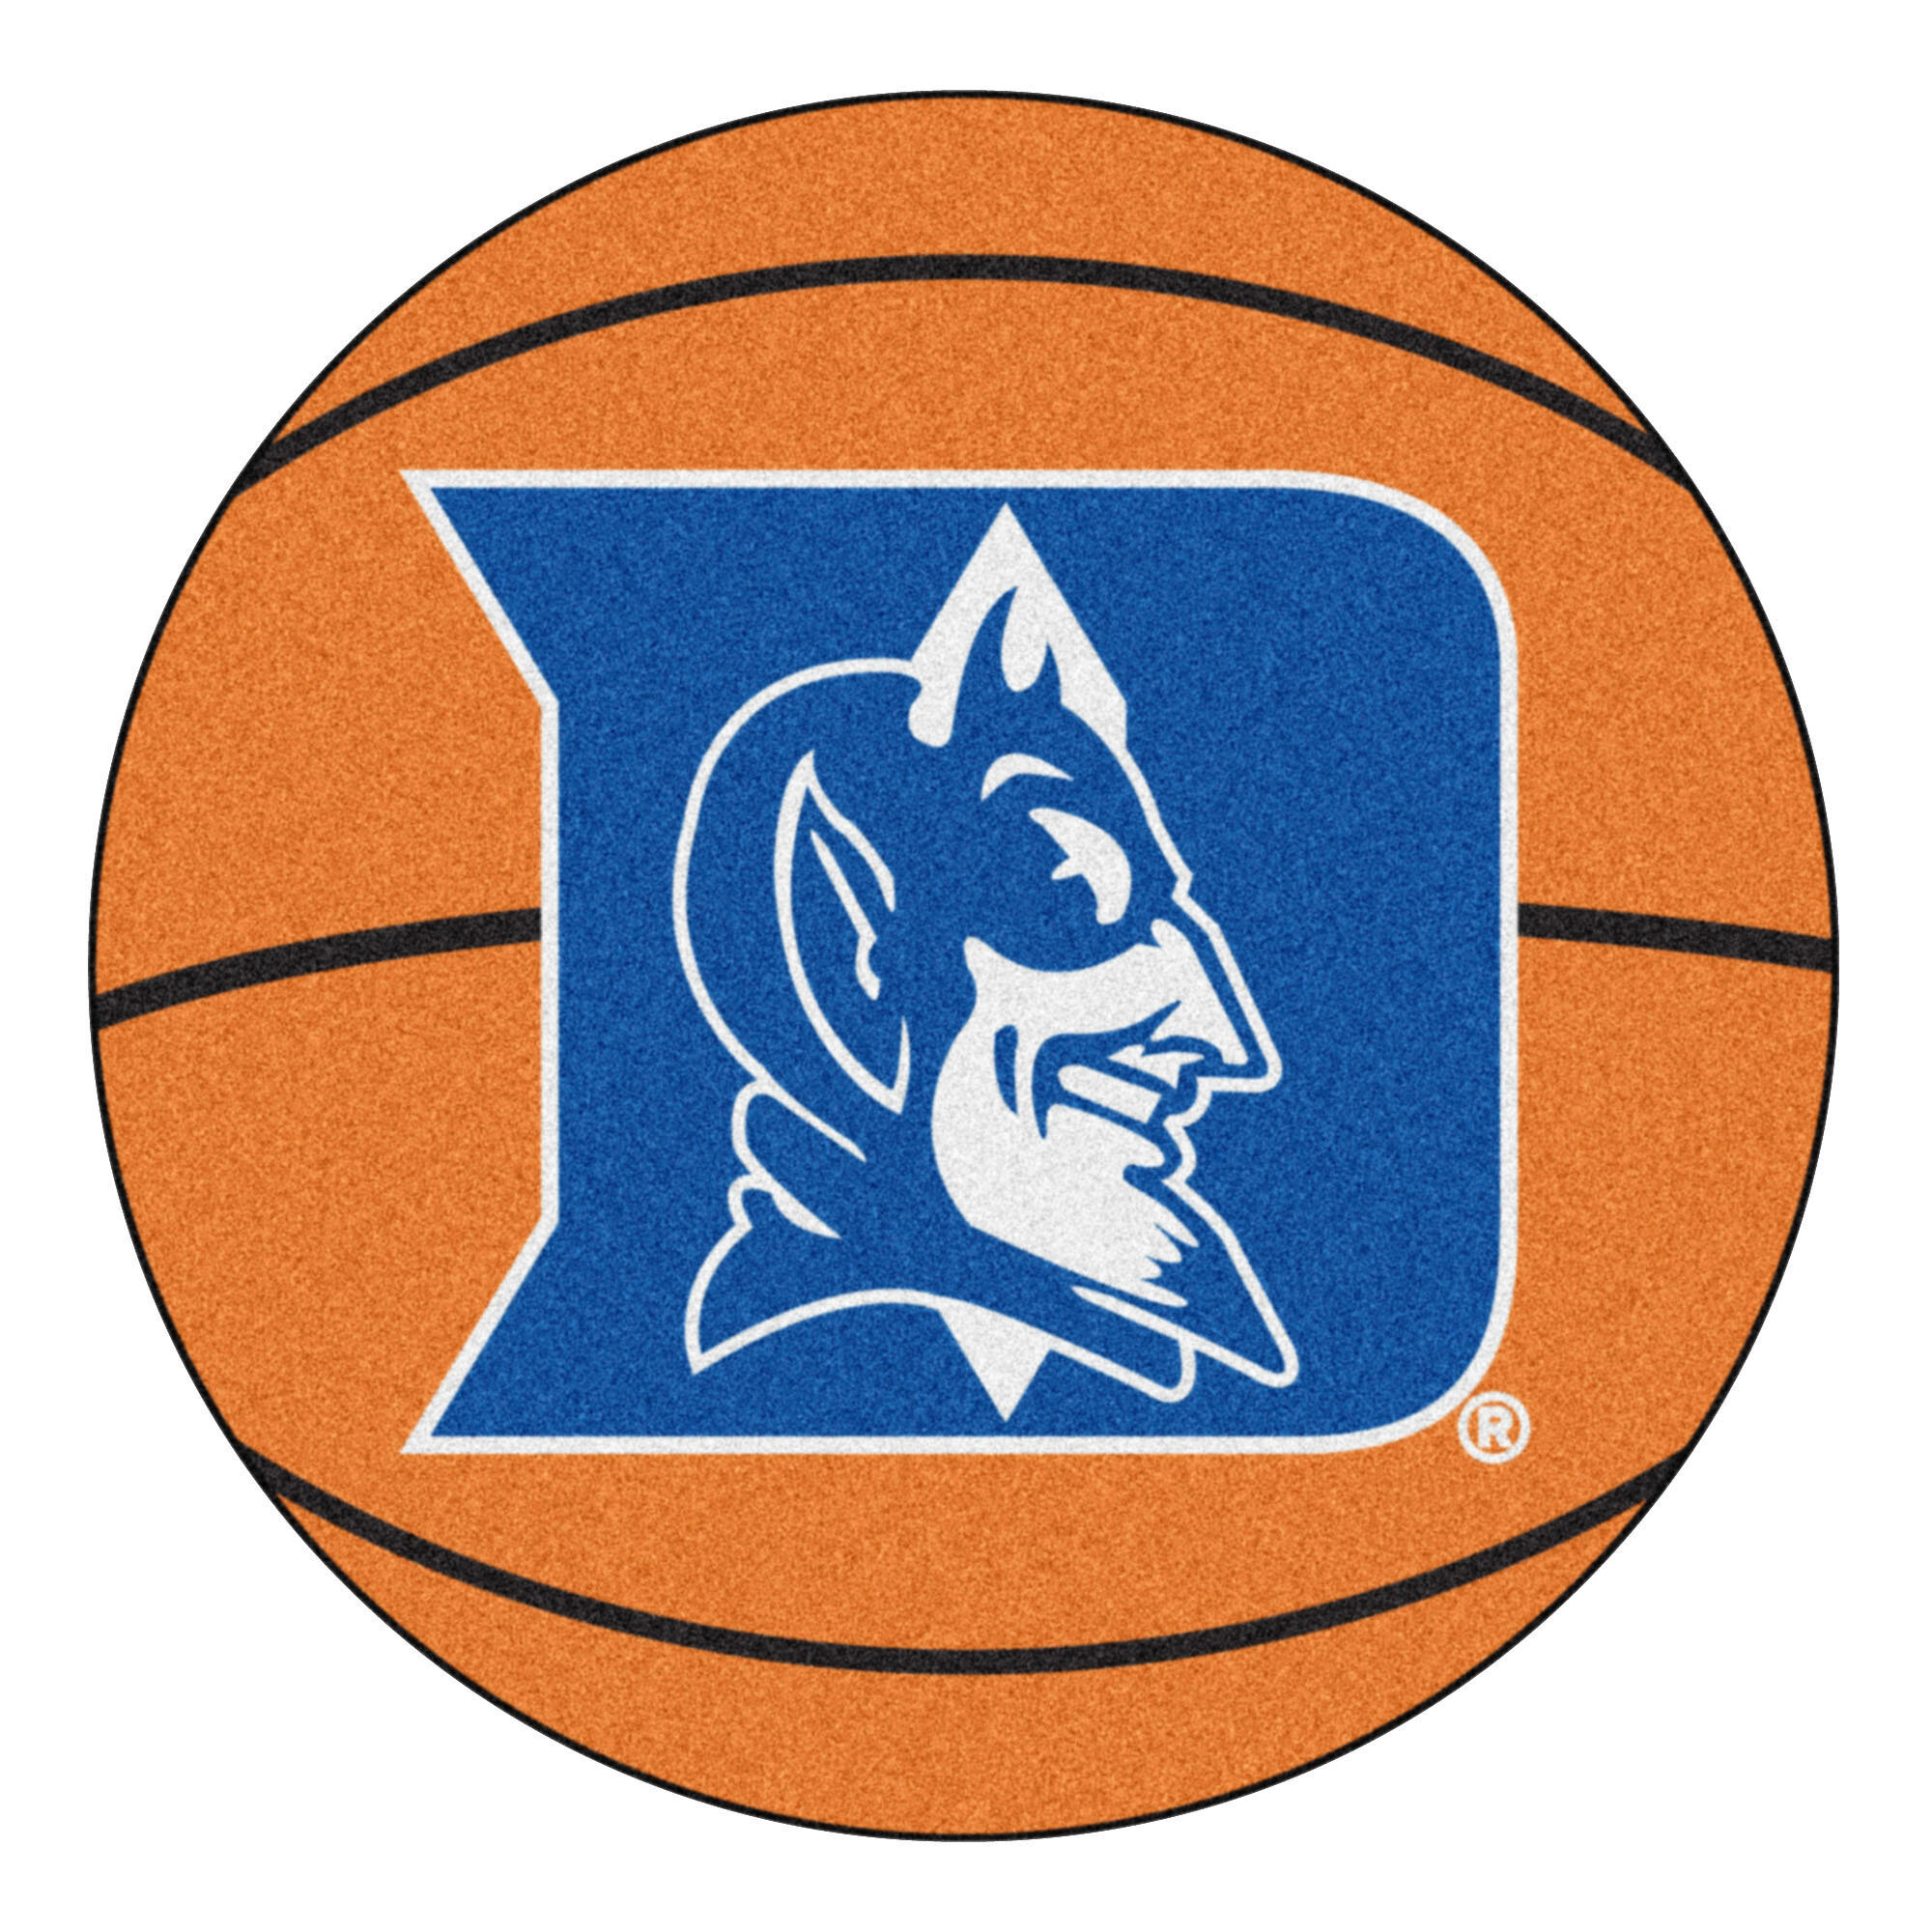 Fanmats Ncaa Duke University Basketball 27 In X 27 In Non Slip Indoor Only Mat Reviews Wayfair